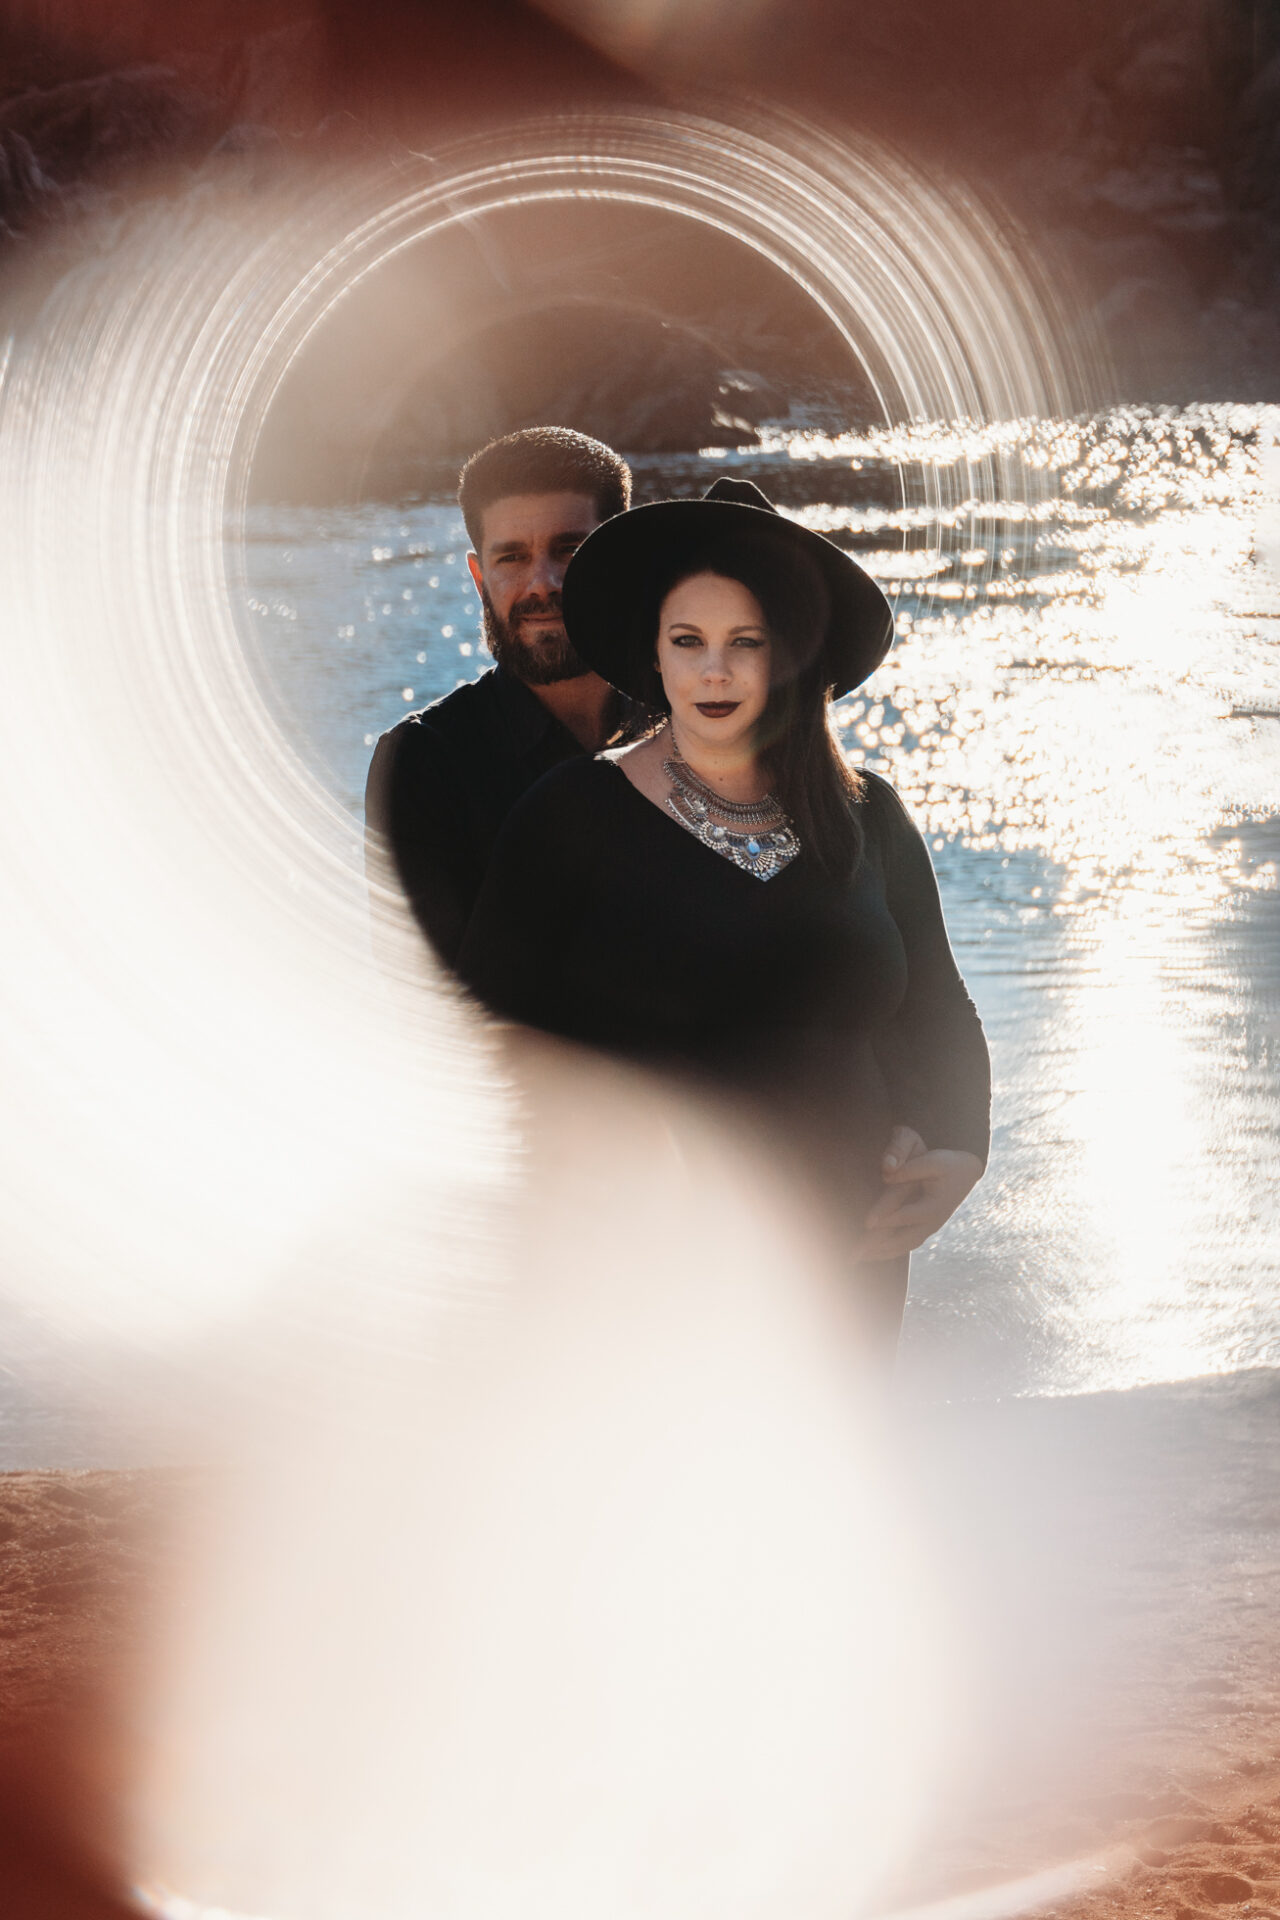 northern virginia creative maternity photo with copper ring sun flare